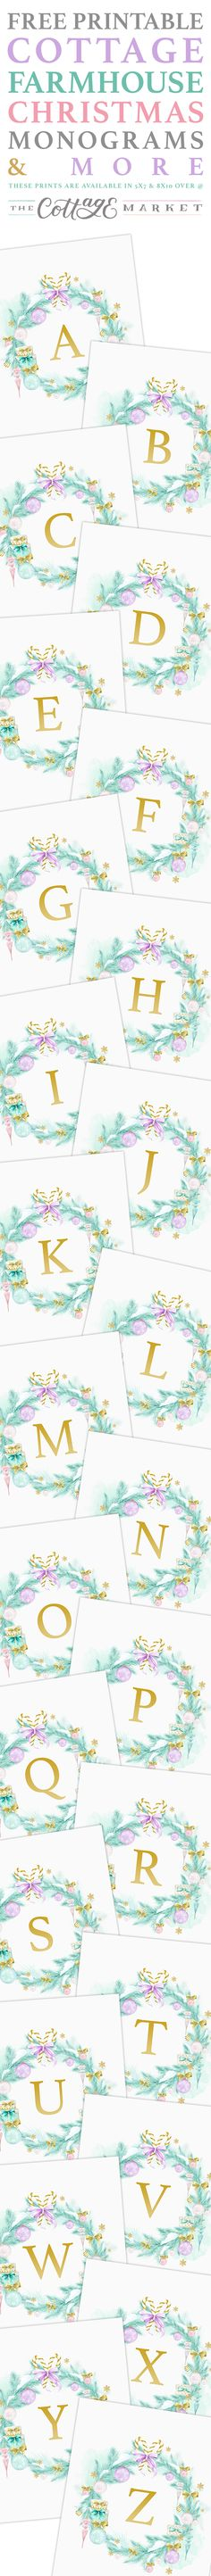 Come and snatch up your Free Printable Cottage Farmhouse Christmas Monograms...they are so pretty in all their Shabby Chic Cottage Style. CREATE & ENJOY!